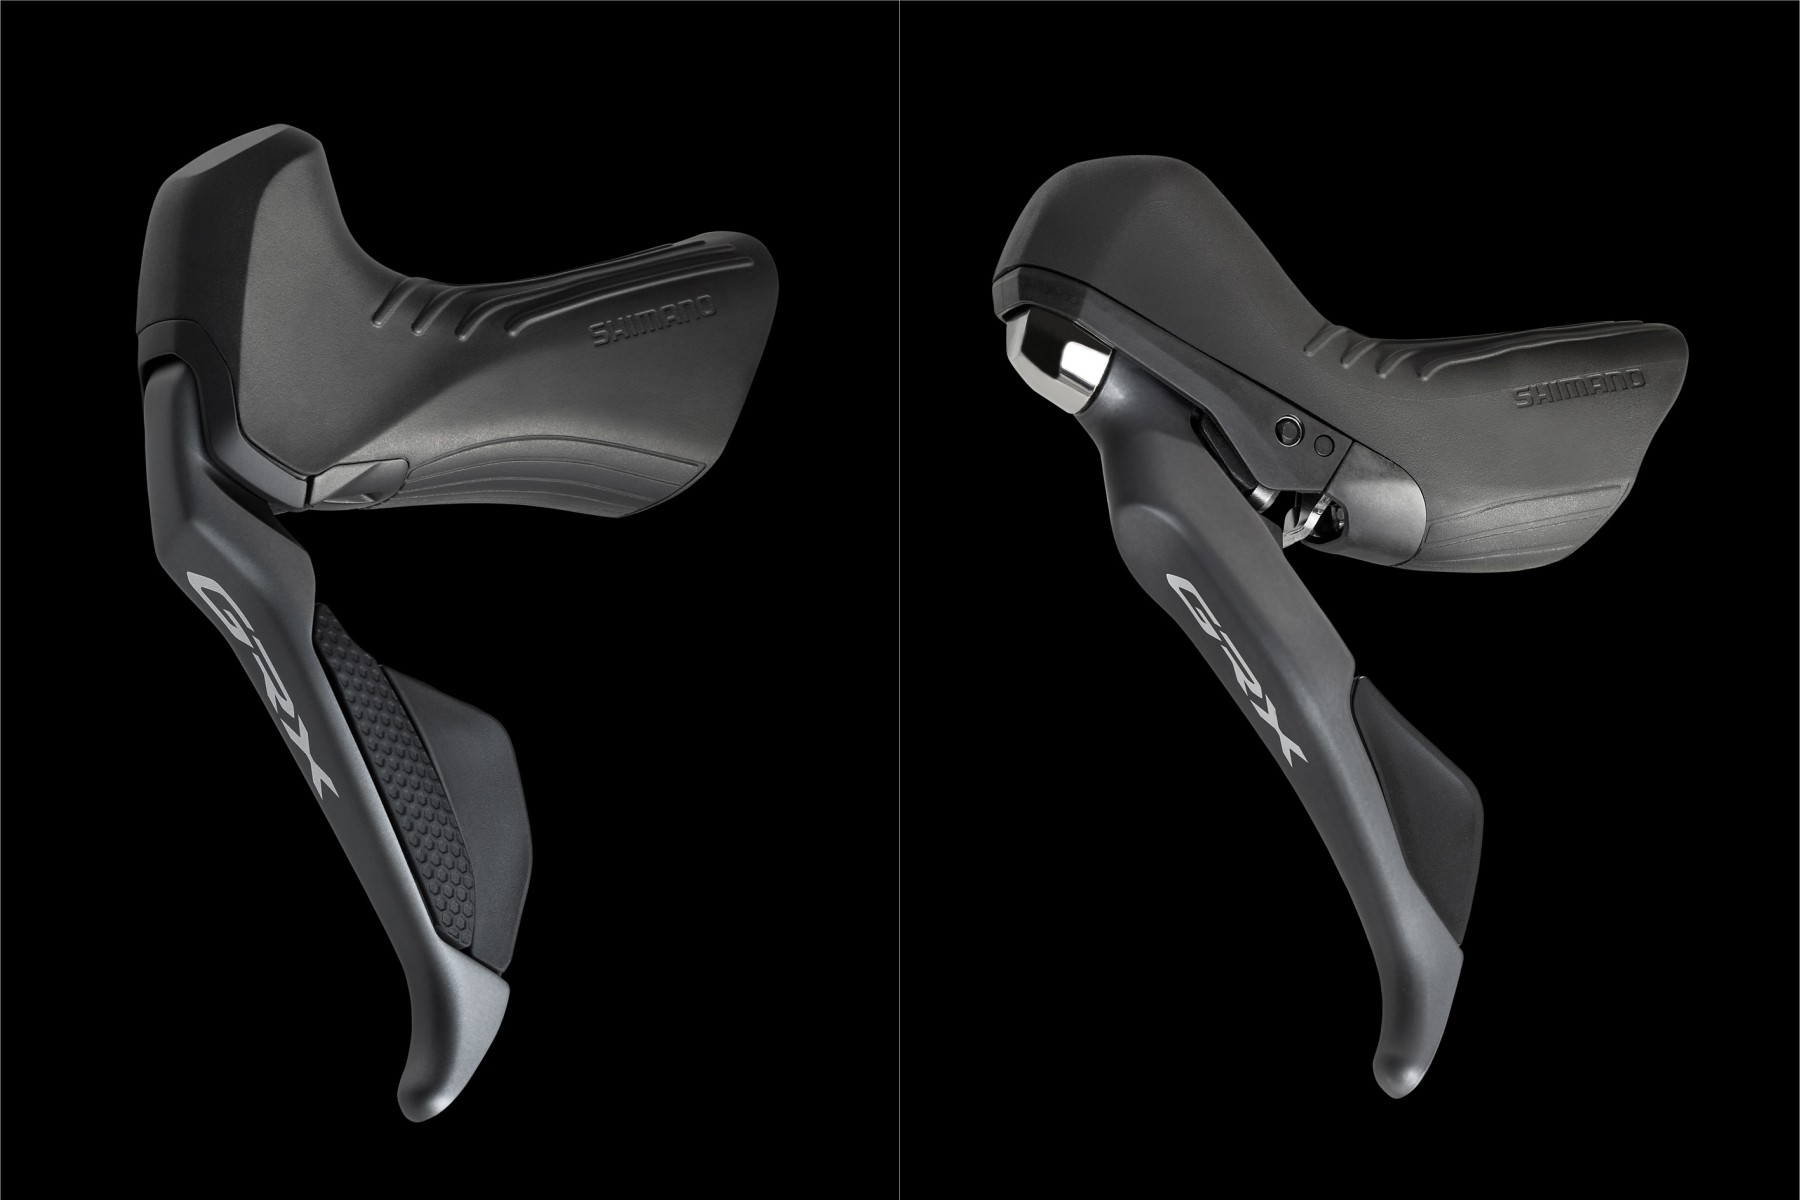 Two left-hand Shimano shift/brake levers: one Di2, one mechanical